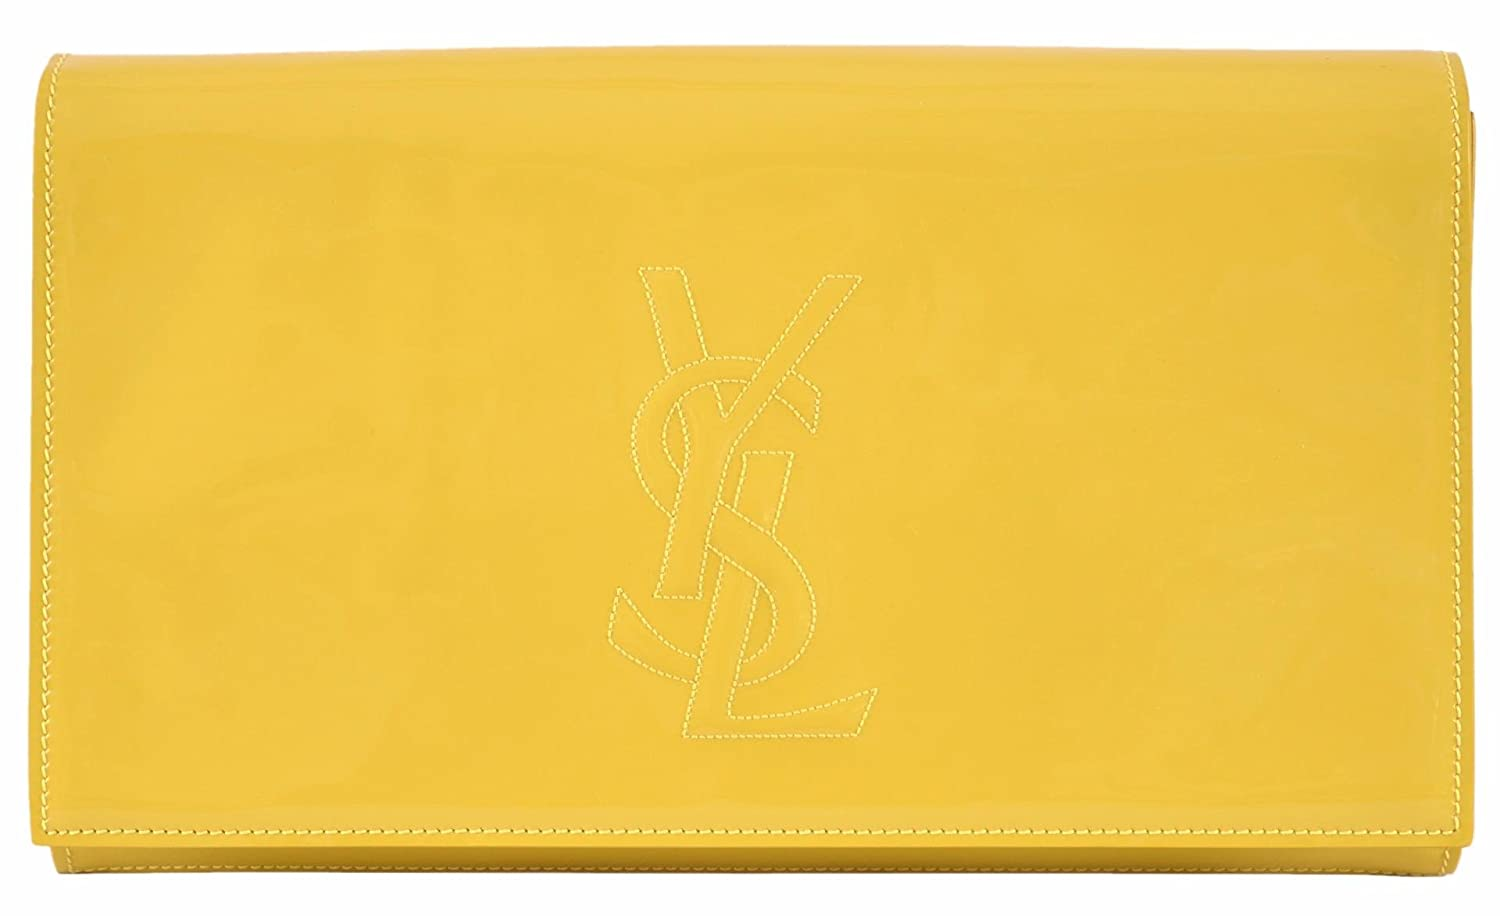 Yves Saint Laurent YSL Women's Yellow Patent Leather Large Belle de Jour Clutch